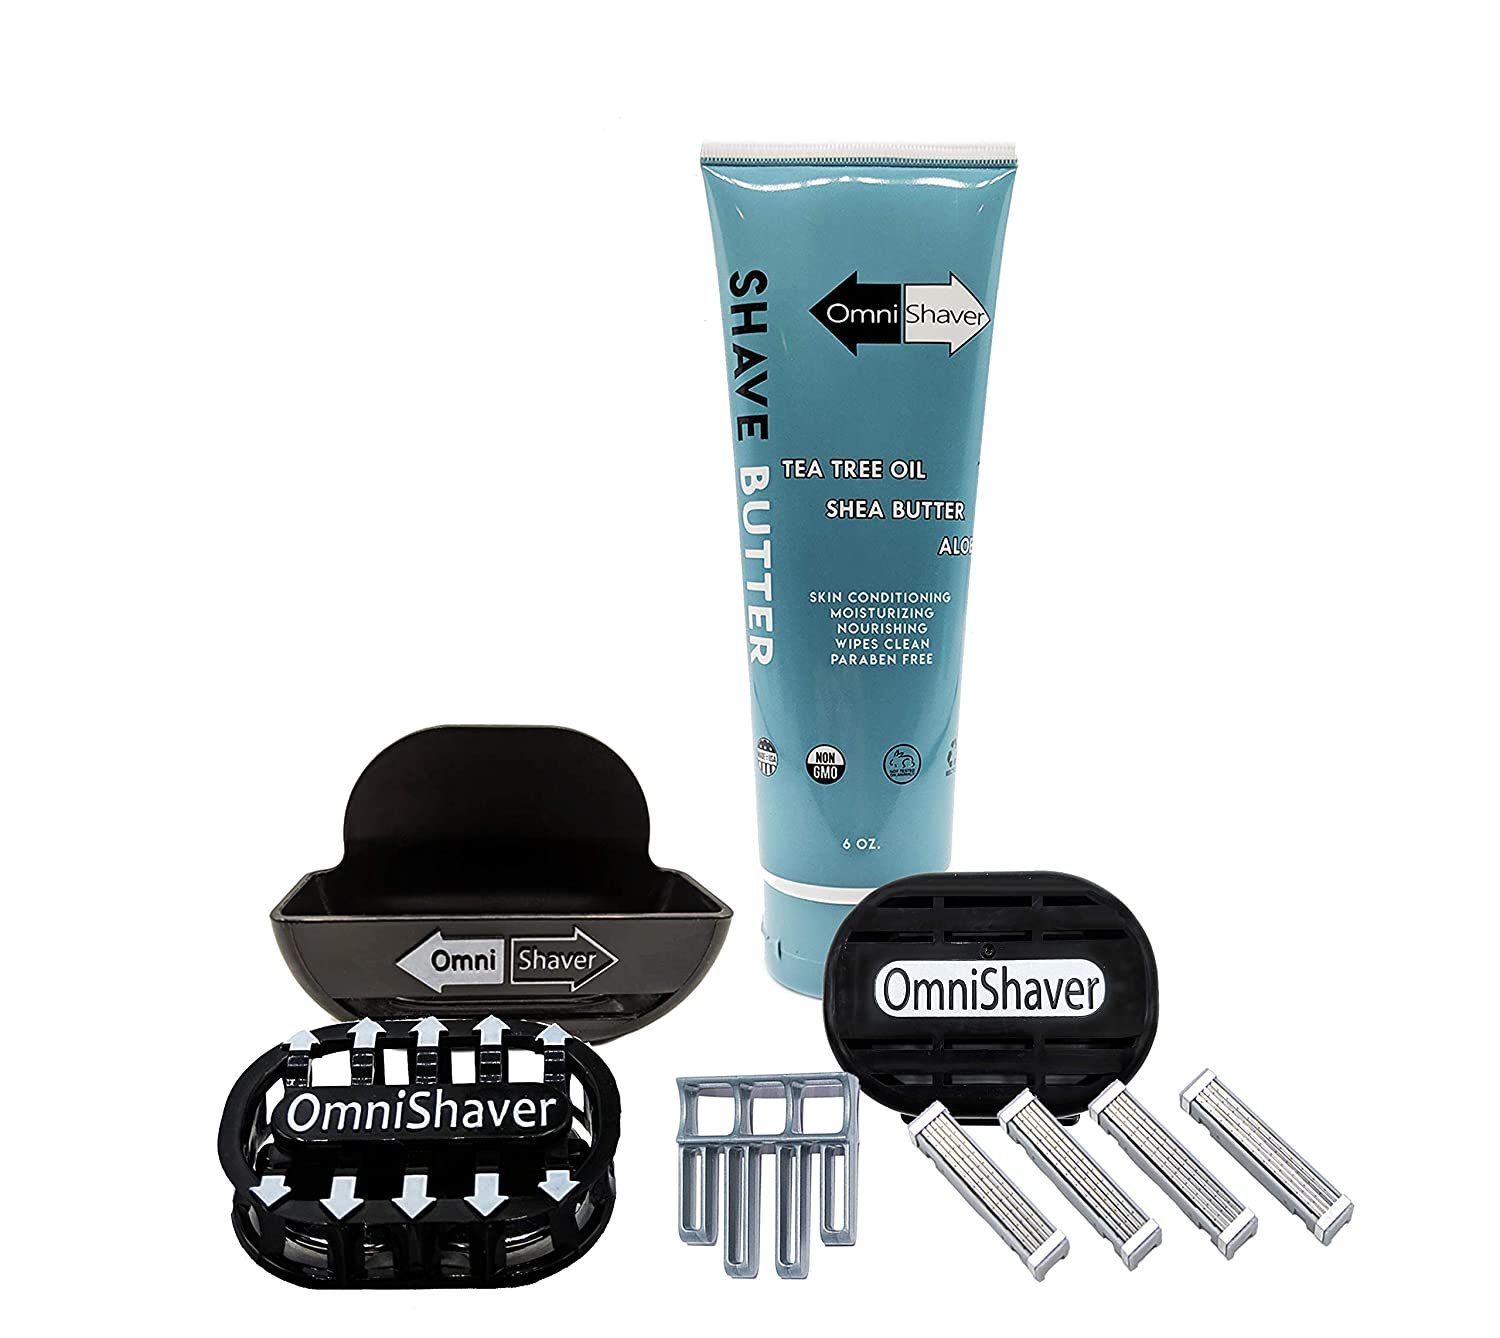 Premium Omnishaver Kit - Fastest Way to Shave Head, Legs, Arms, Body | An alternative to Disposable Shaving Razors Self Cleans & Strops During Use with Shave Butter & Replacement Cartridge Color Black